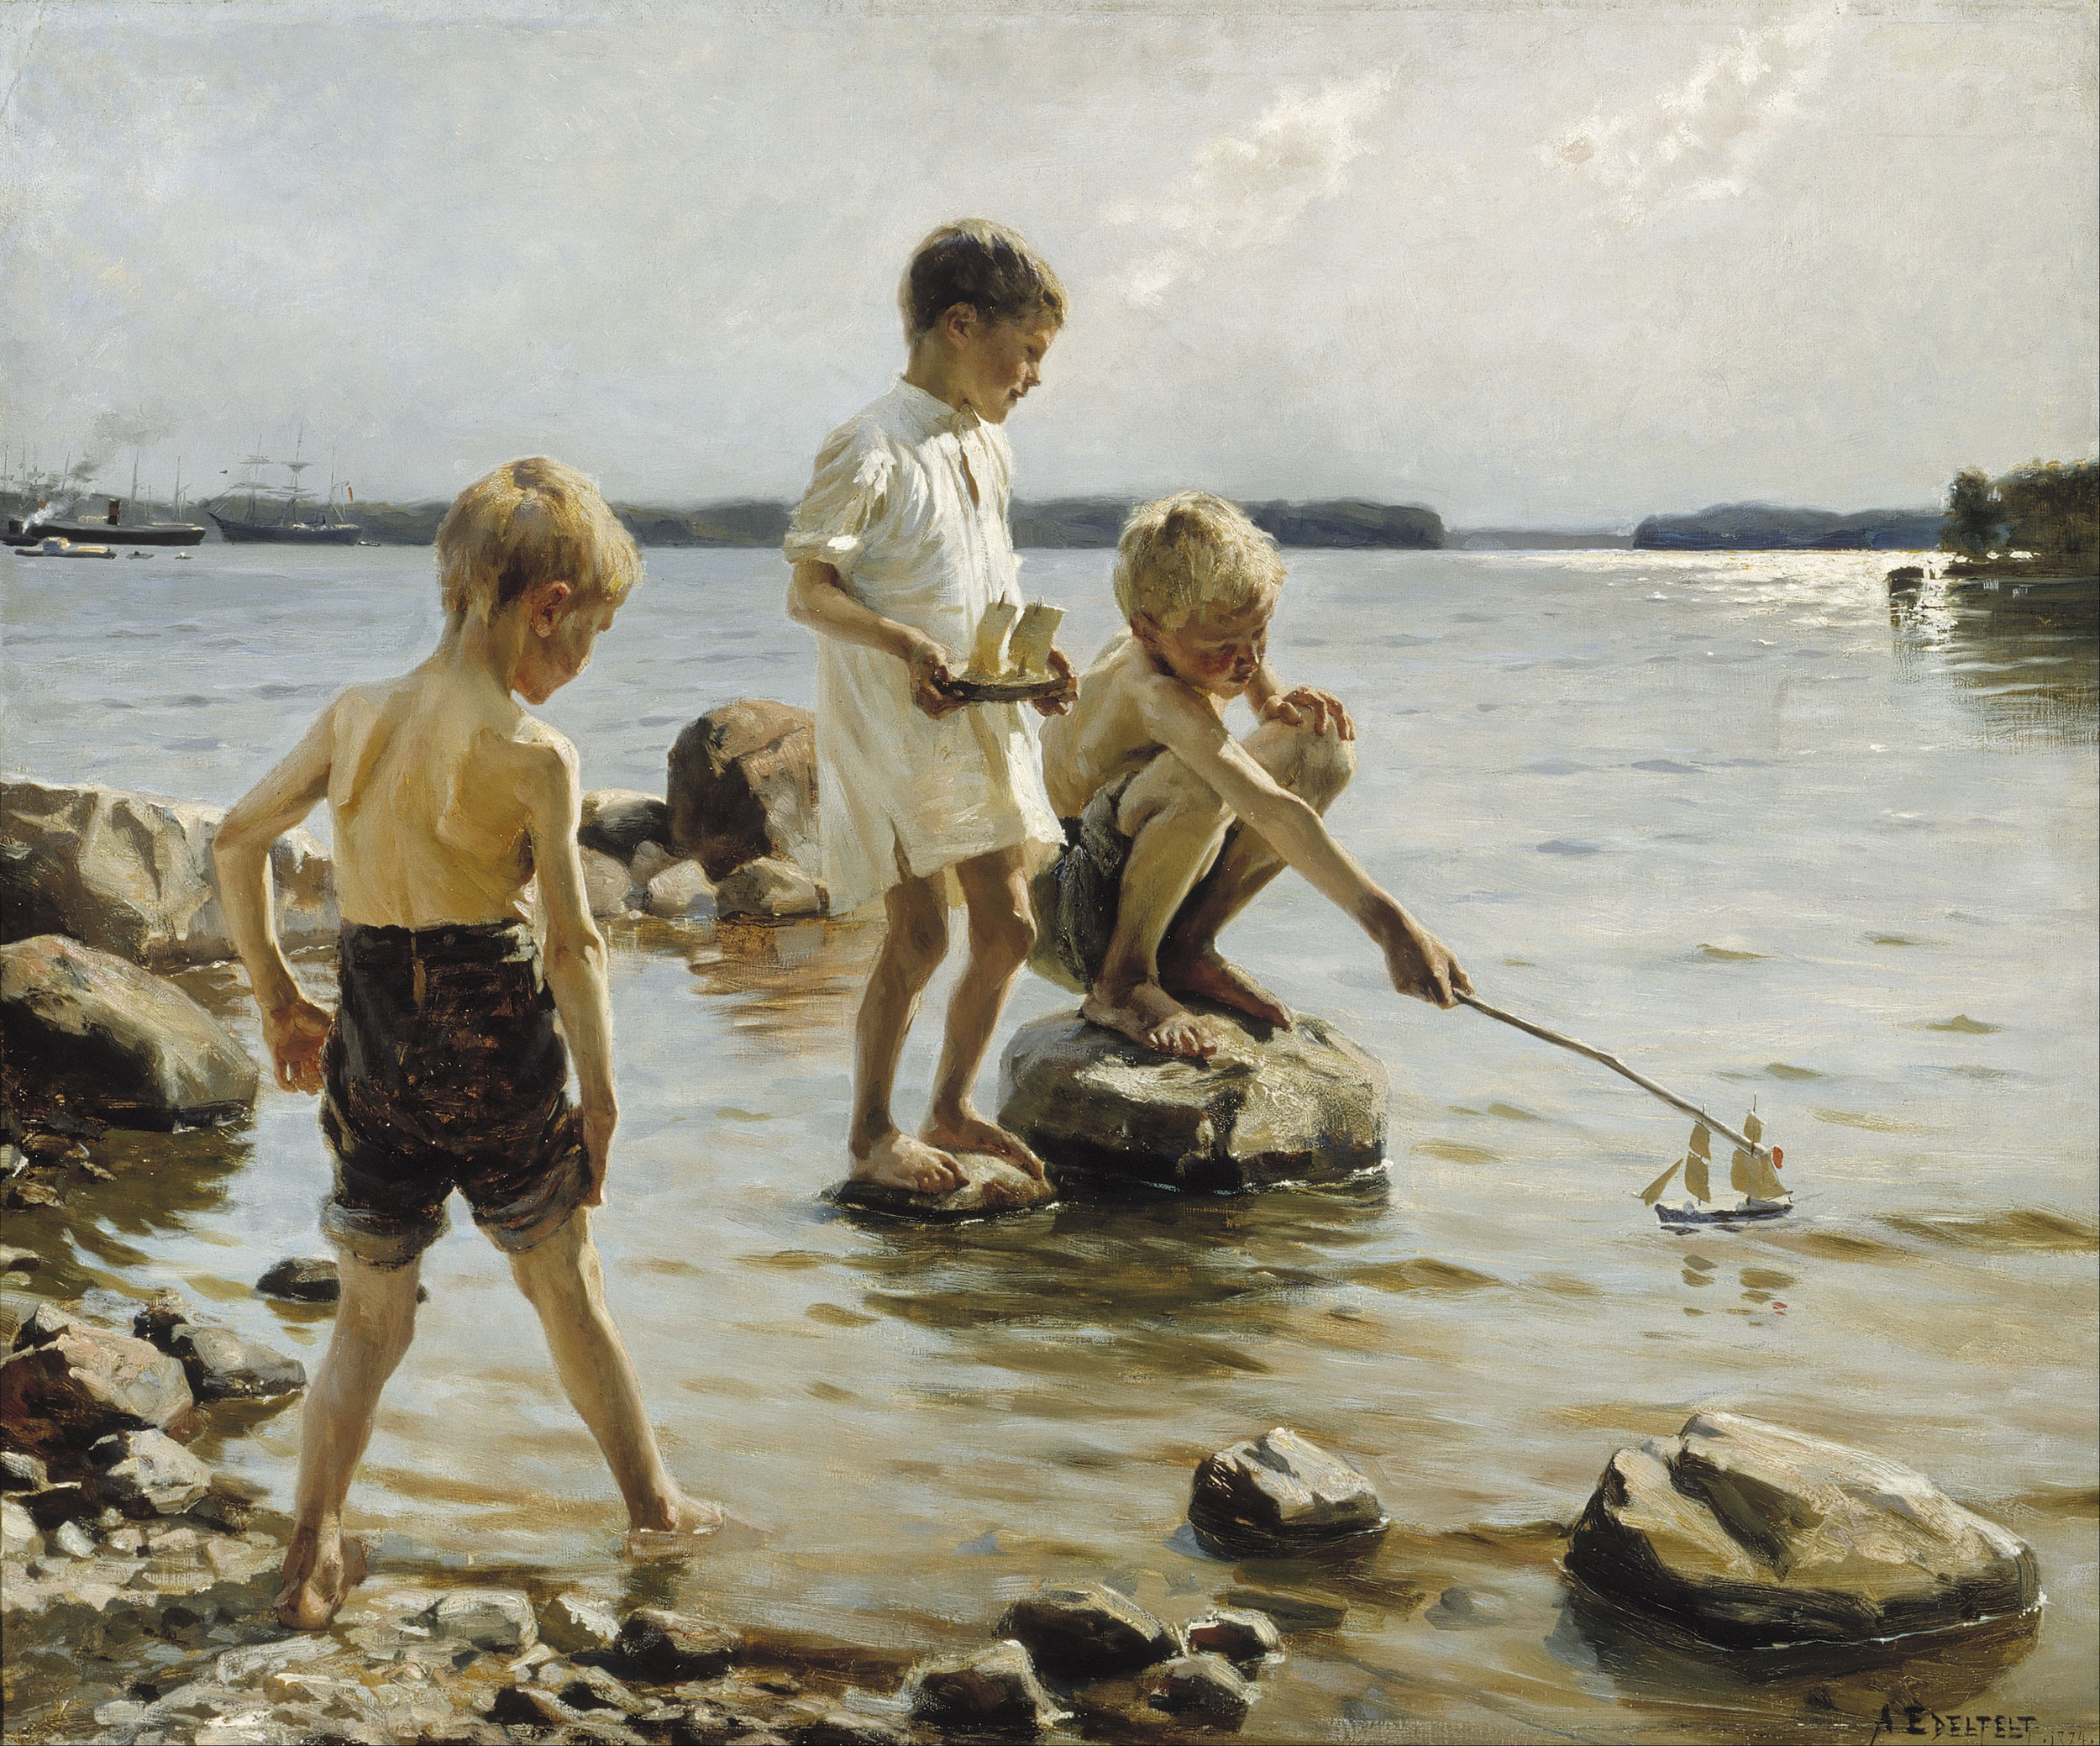 Albert_Edelfelt_-_Boys_Playing_on_the_Shore_-_Google_Art_Project.jpg